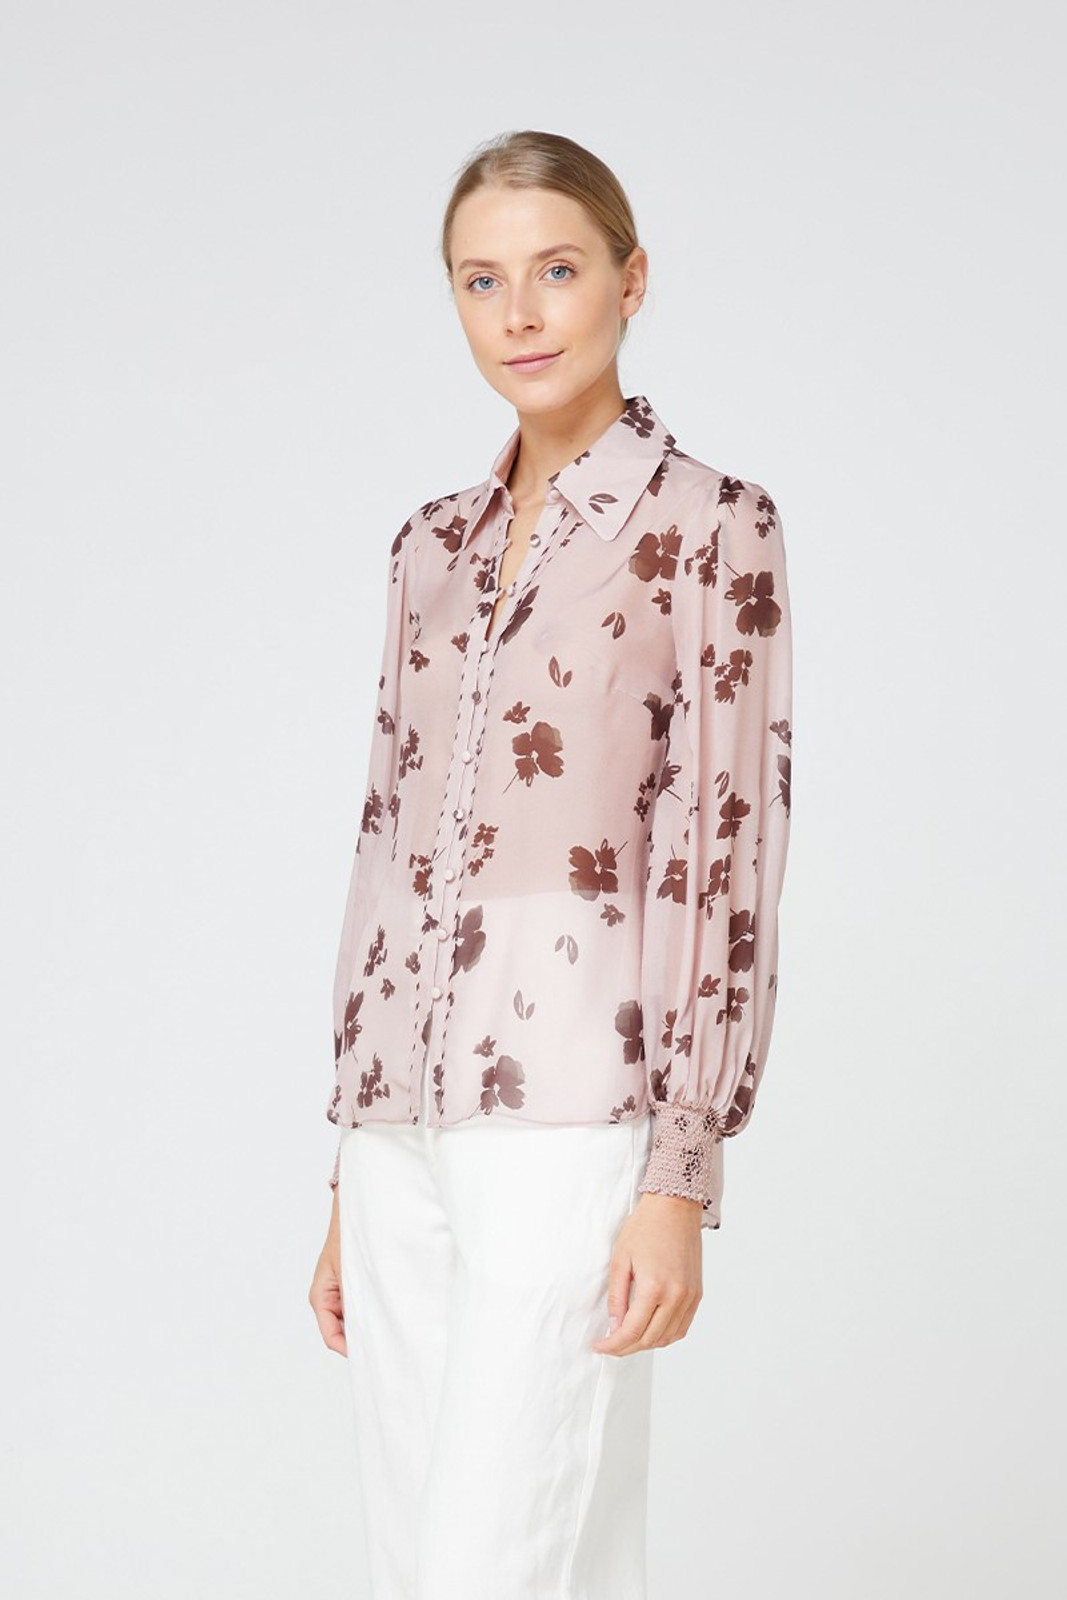 Elka Collective Portofino Shirt Pink  2